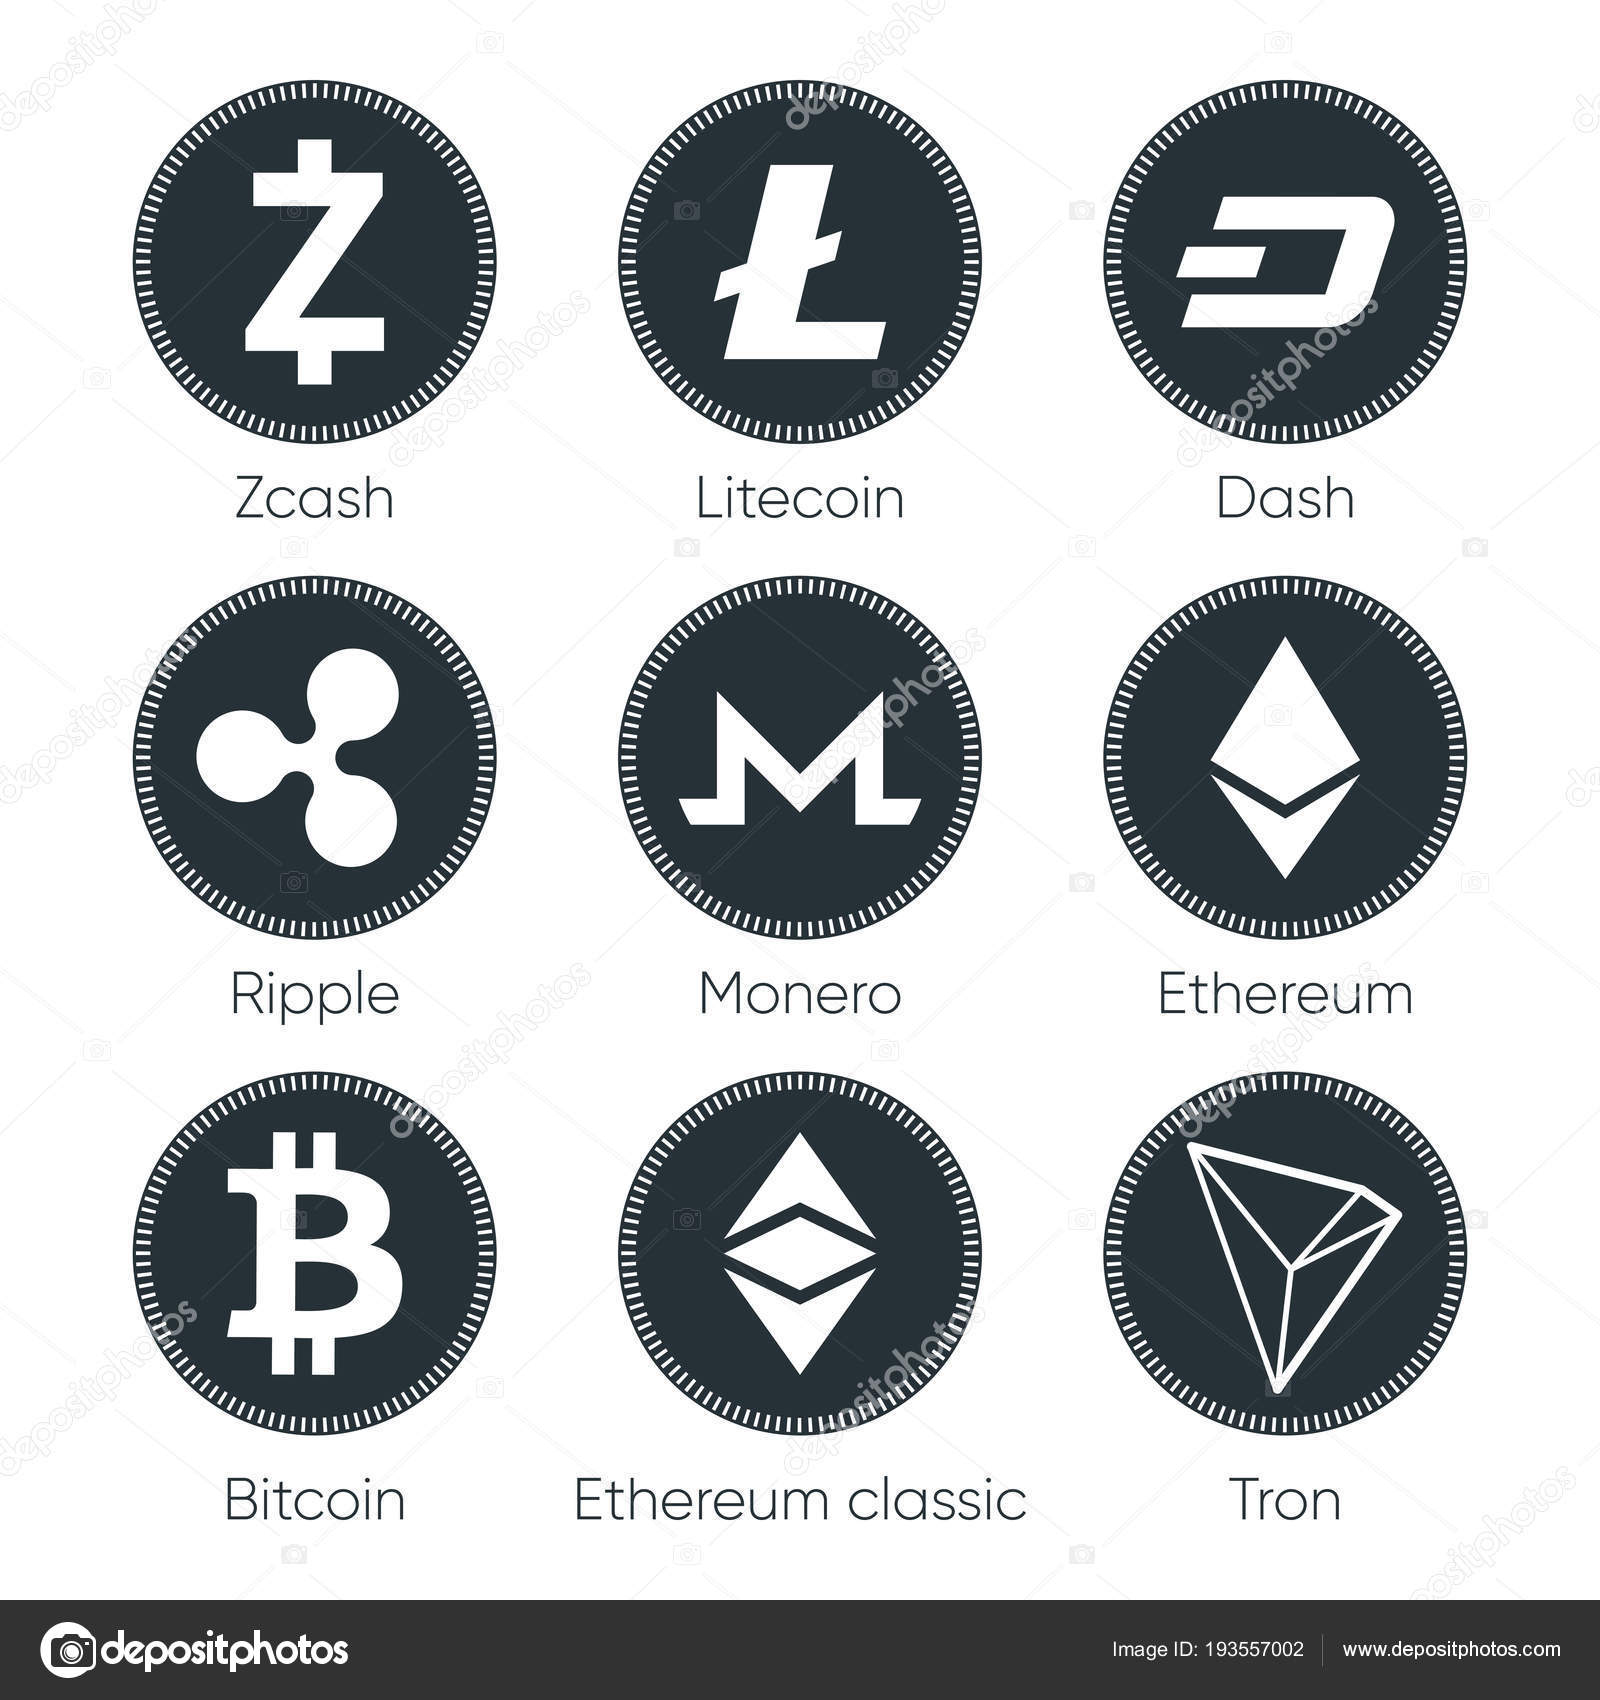 are cryptocurrencies such as bitcoin ethereun ripple litecoin monero money